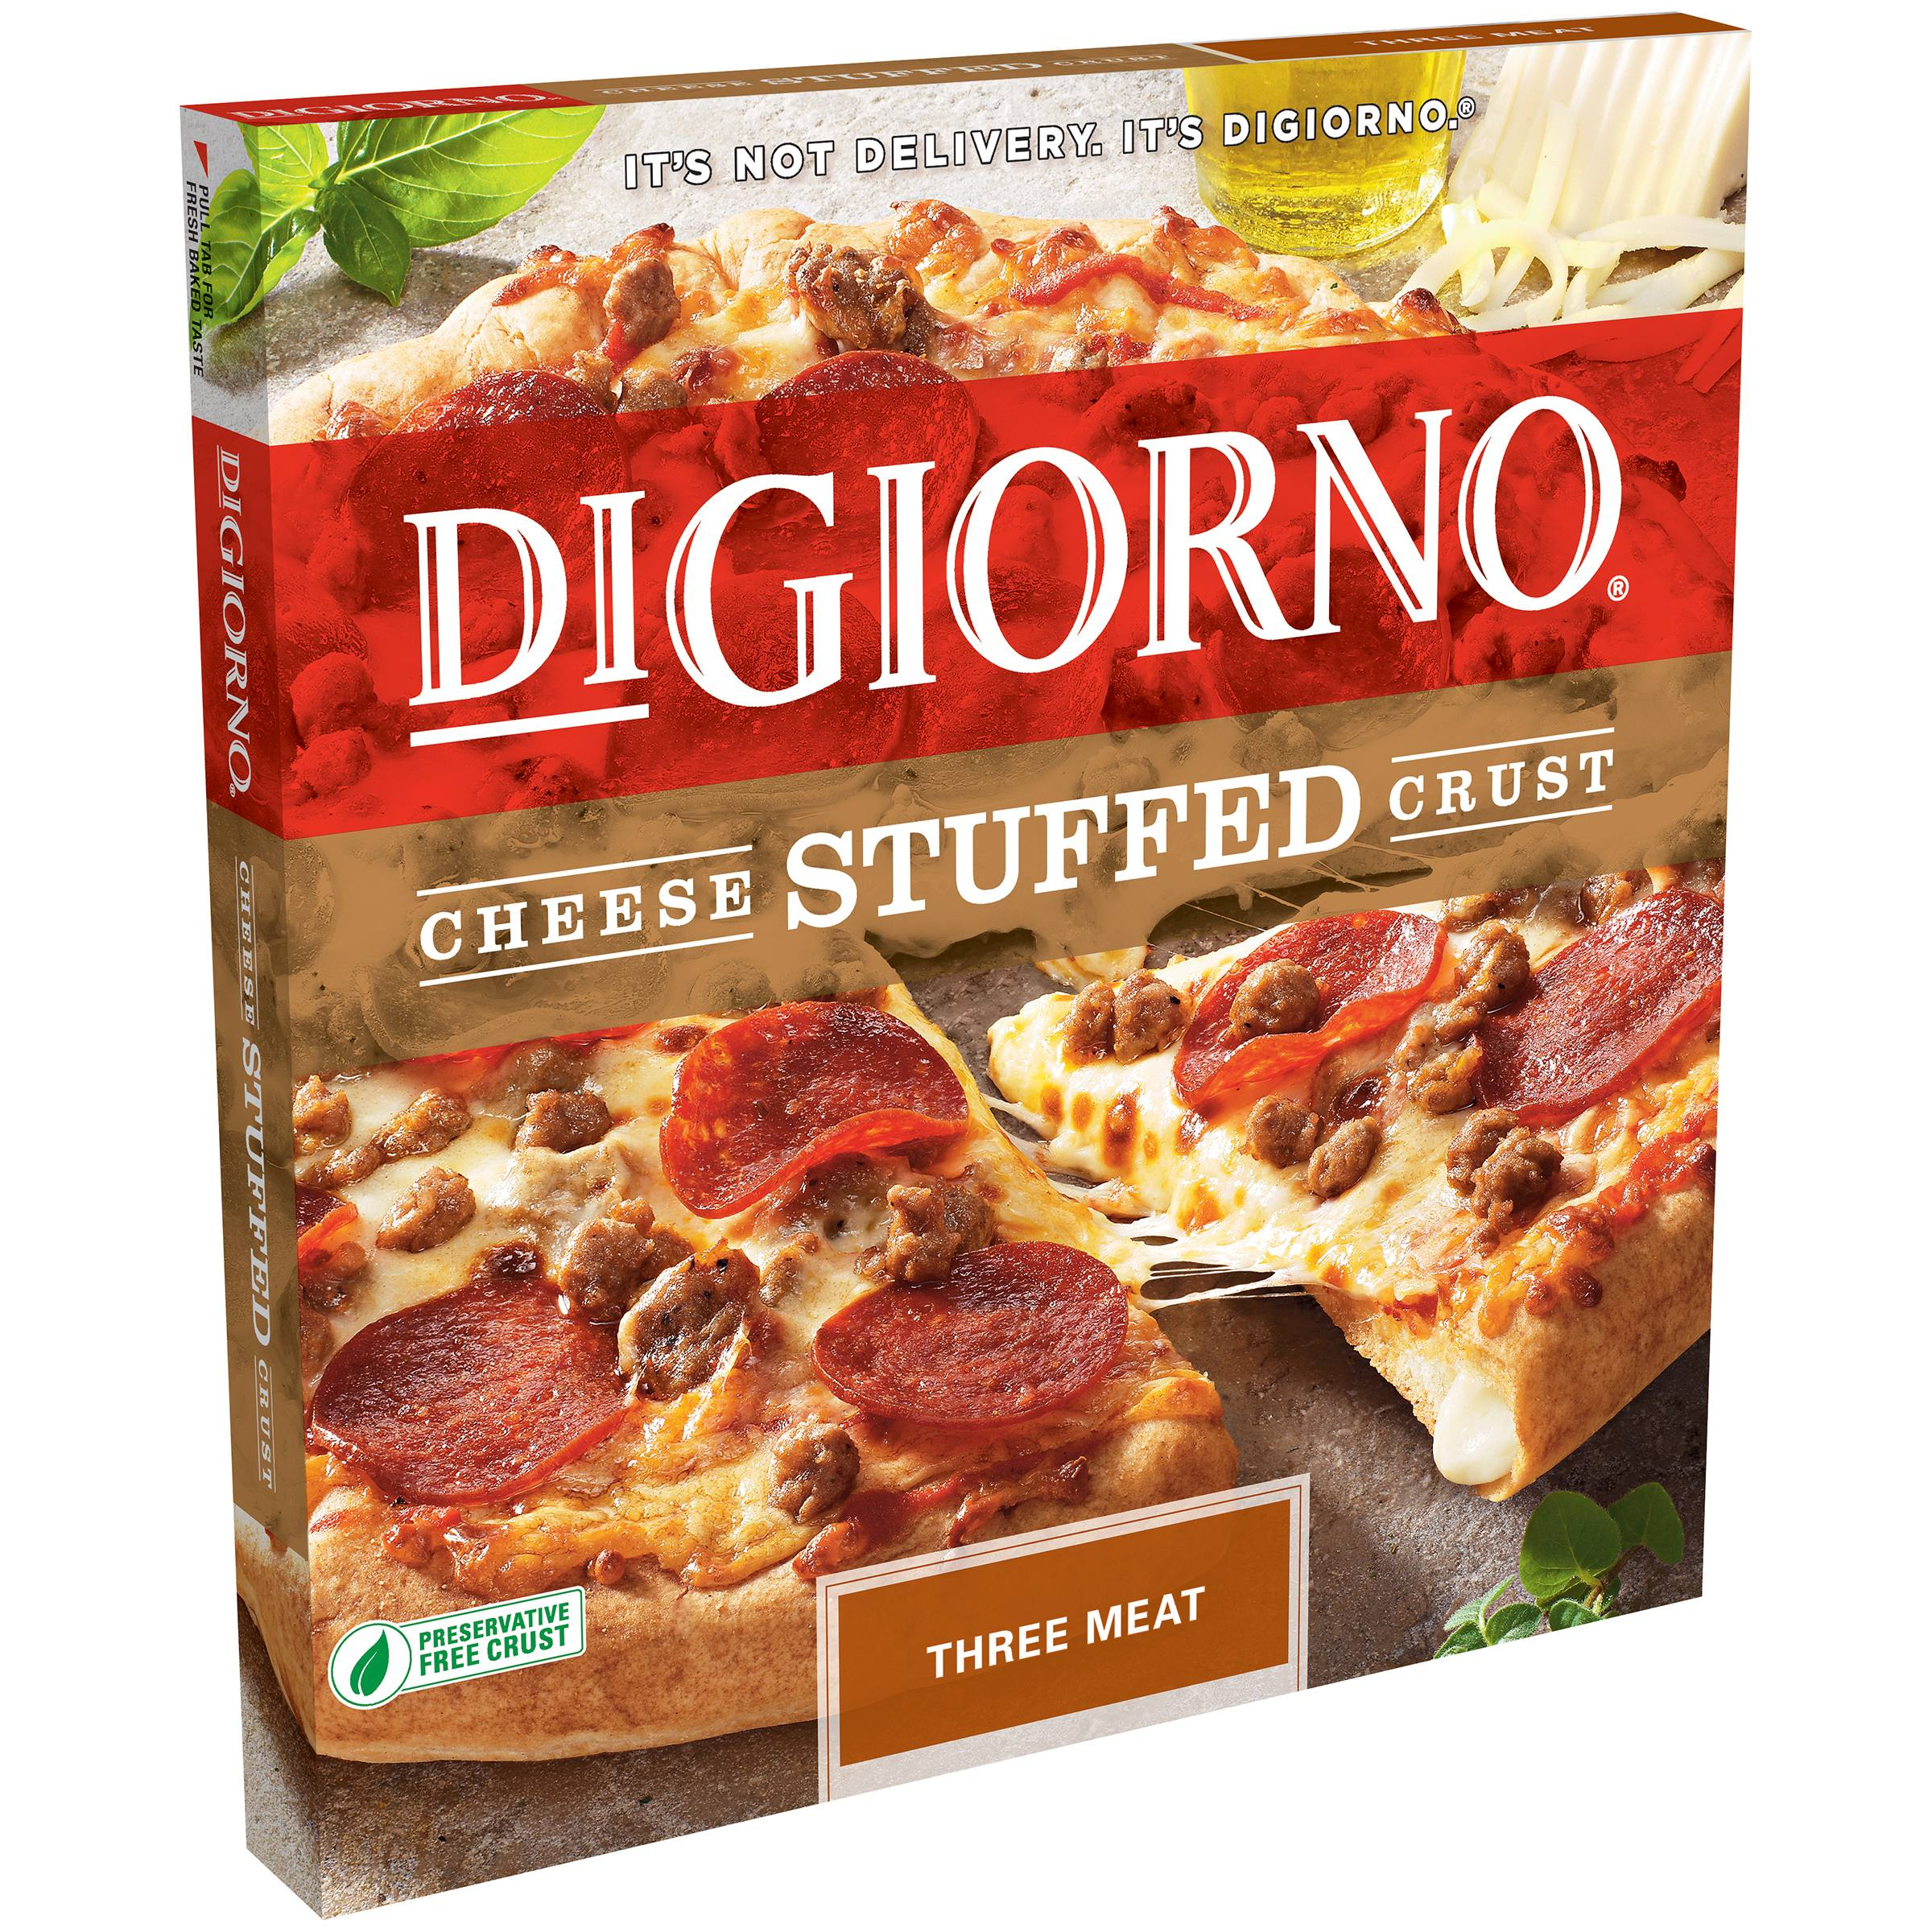 Digiorno Pizza Digiorno Cheese Stuffed Crust Three Meat Pizza 28.7 Ozbox